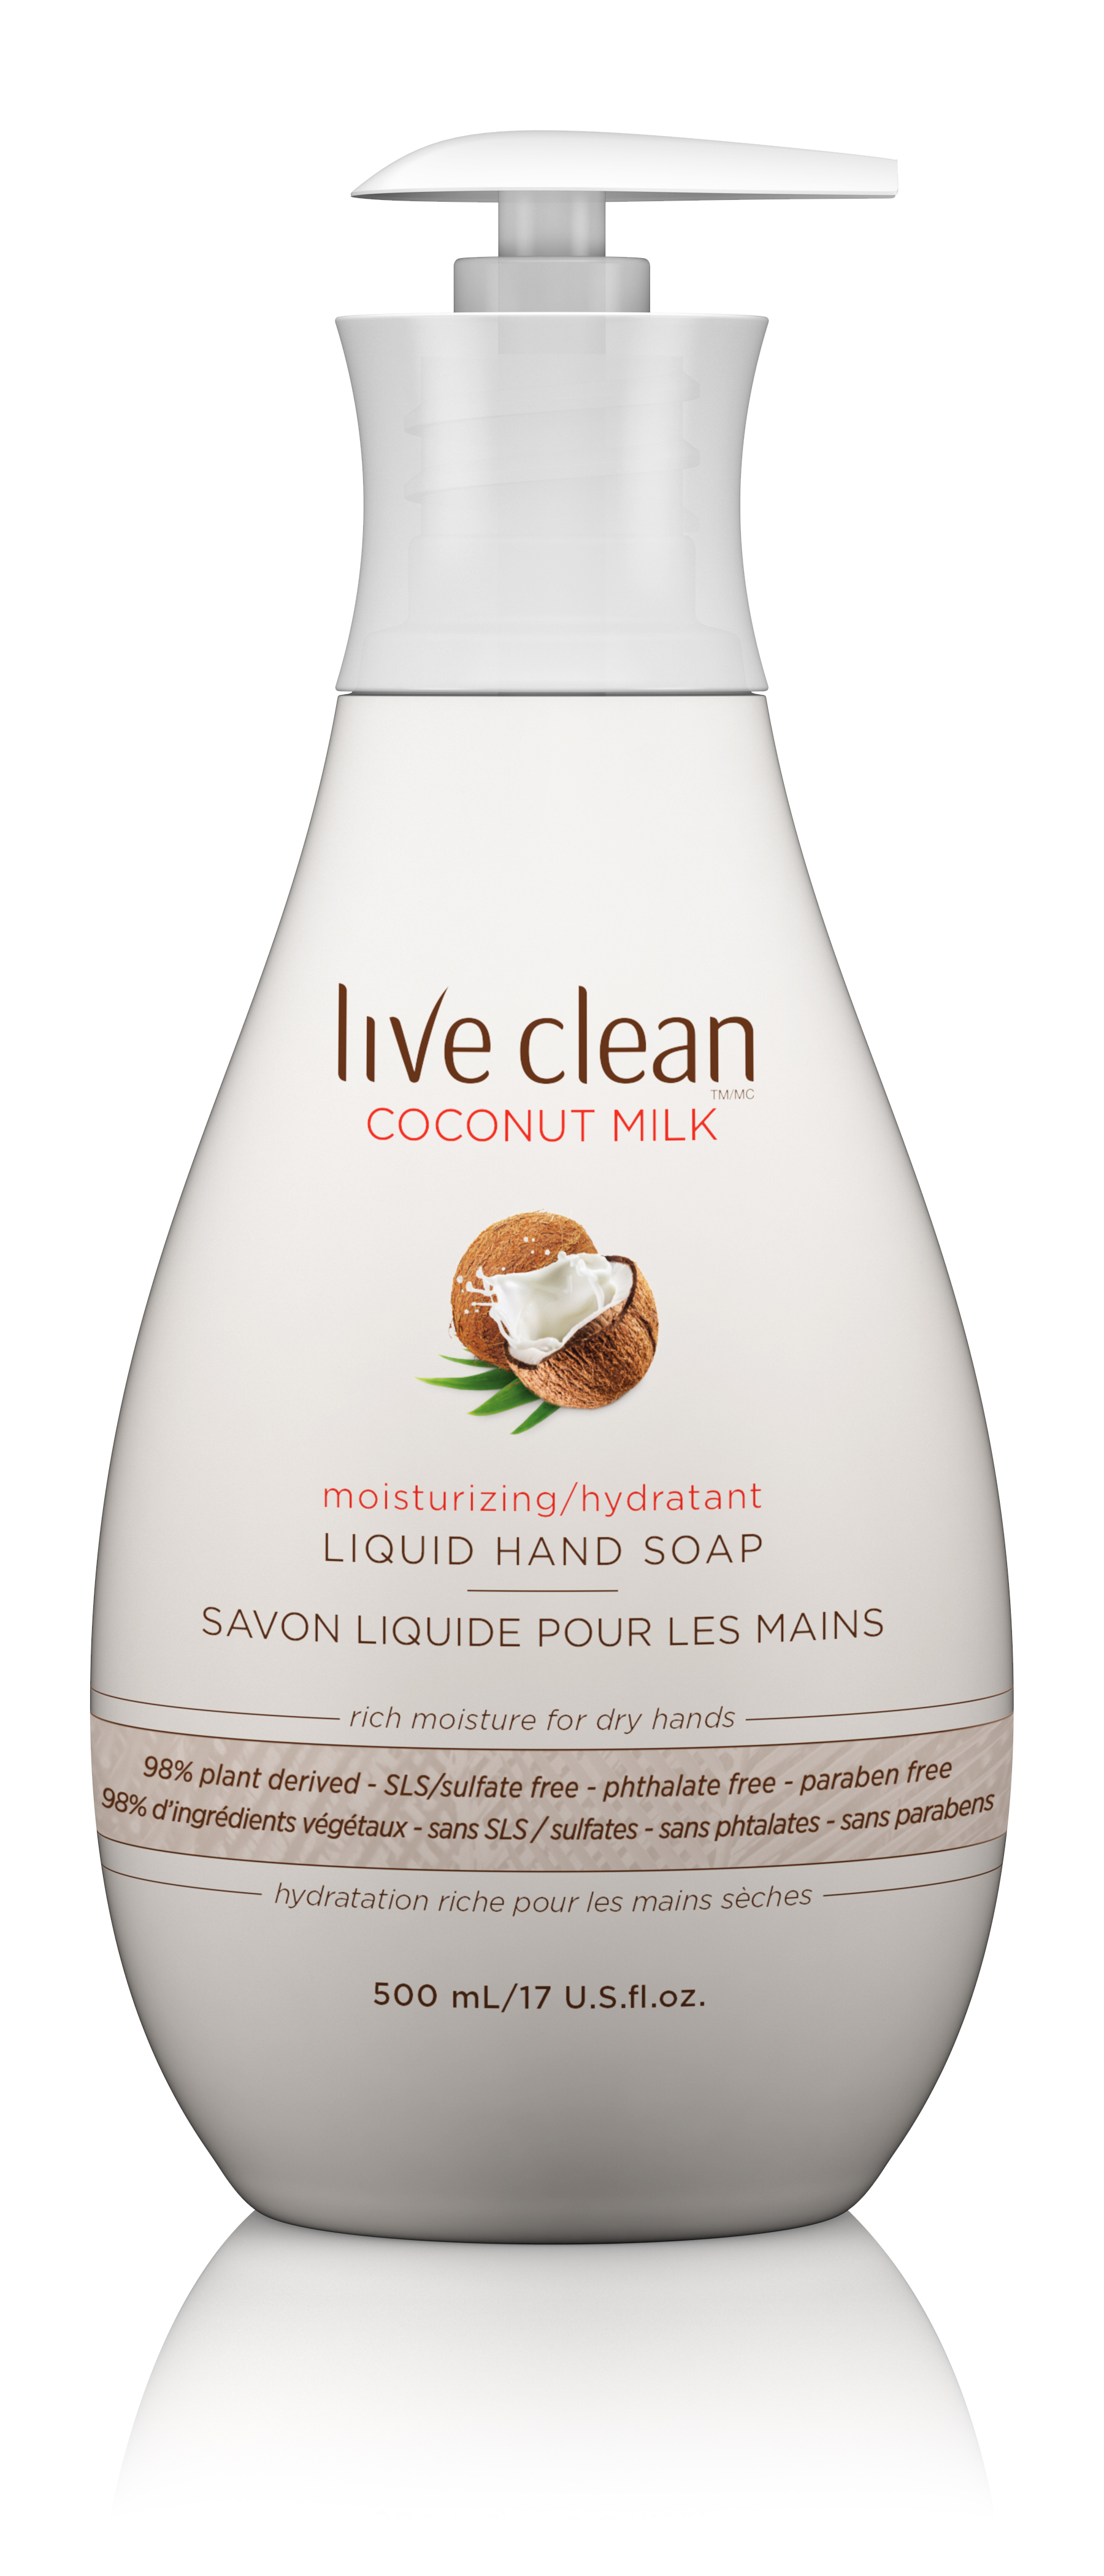 Live Clean Coconut Milk-Moisturizing Liquid Hand Soap by HAIN CELESTIAL